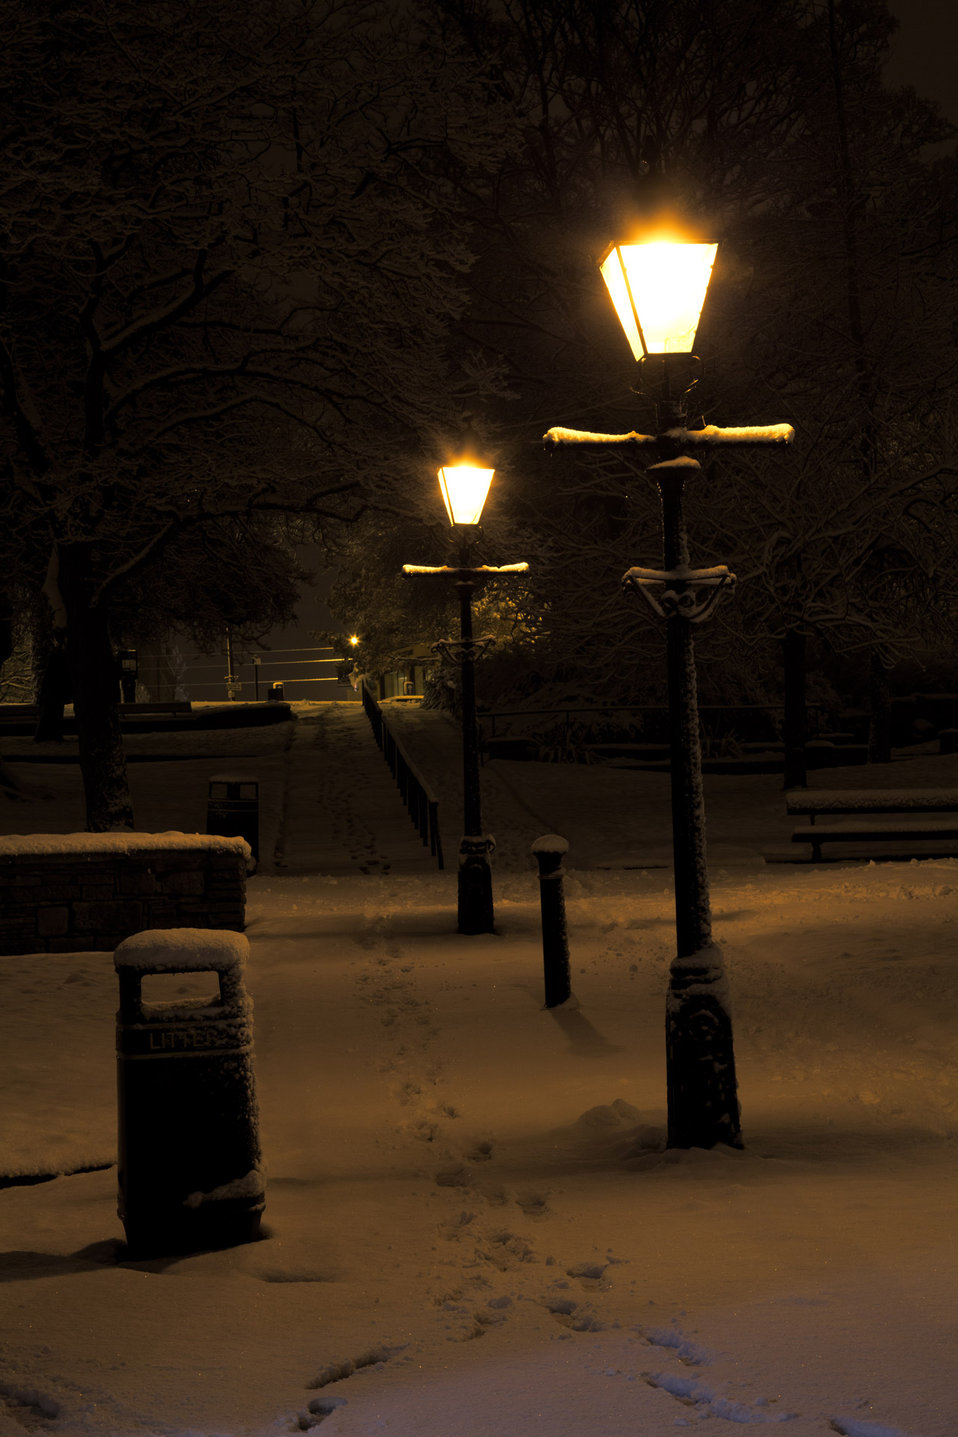 Park at night in winter